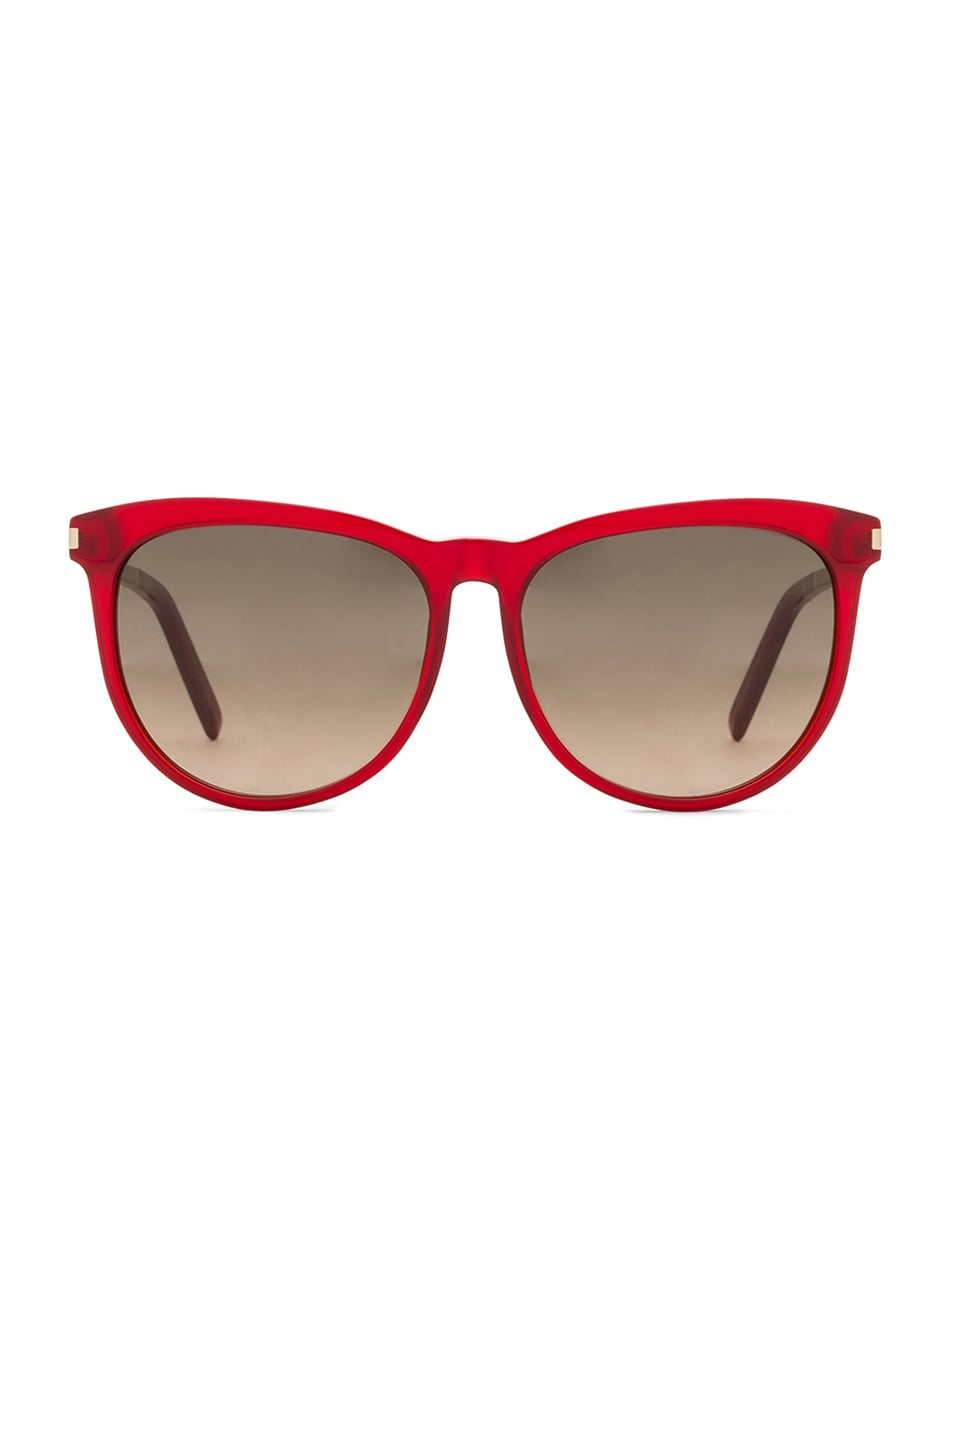 Image 1 of Saint Laurent 24S Sunglasses in Transparent Red